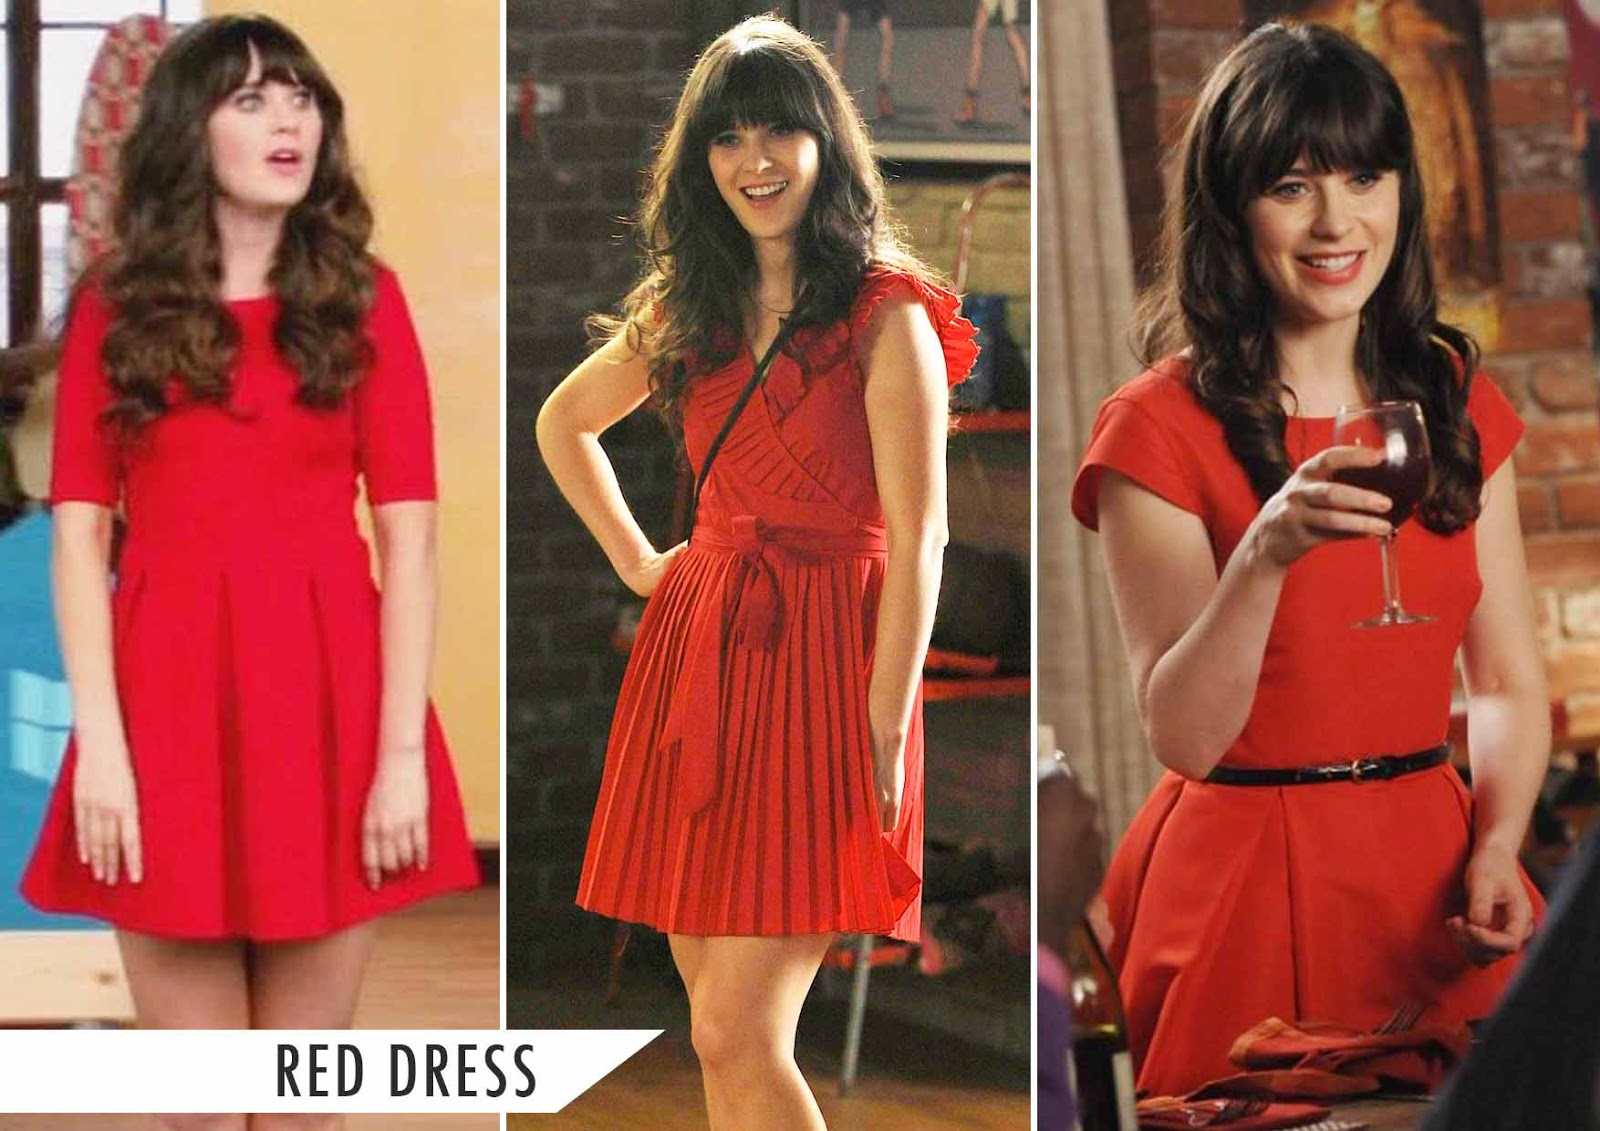 jess day red dress, new girl red dress,